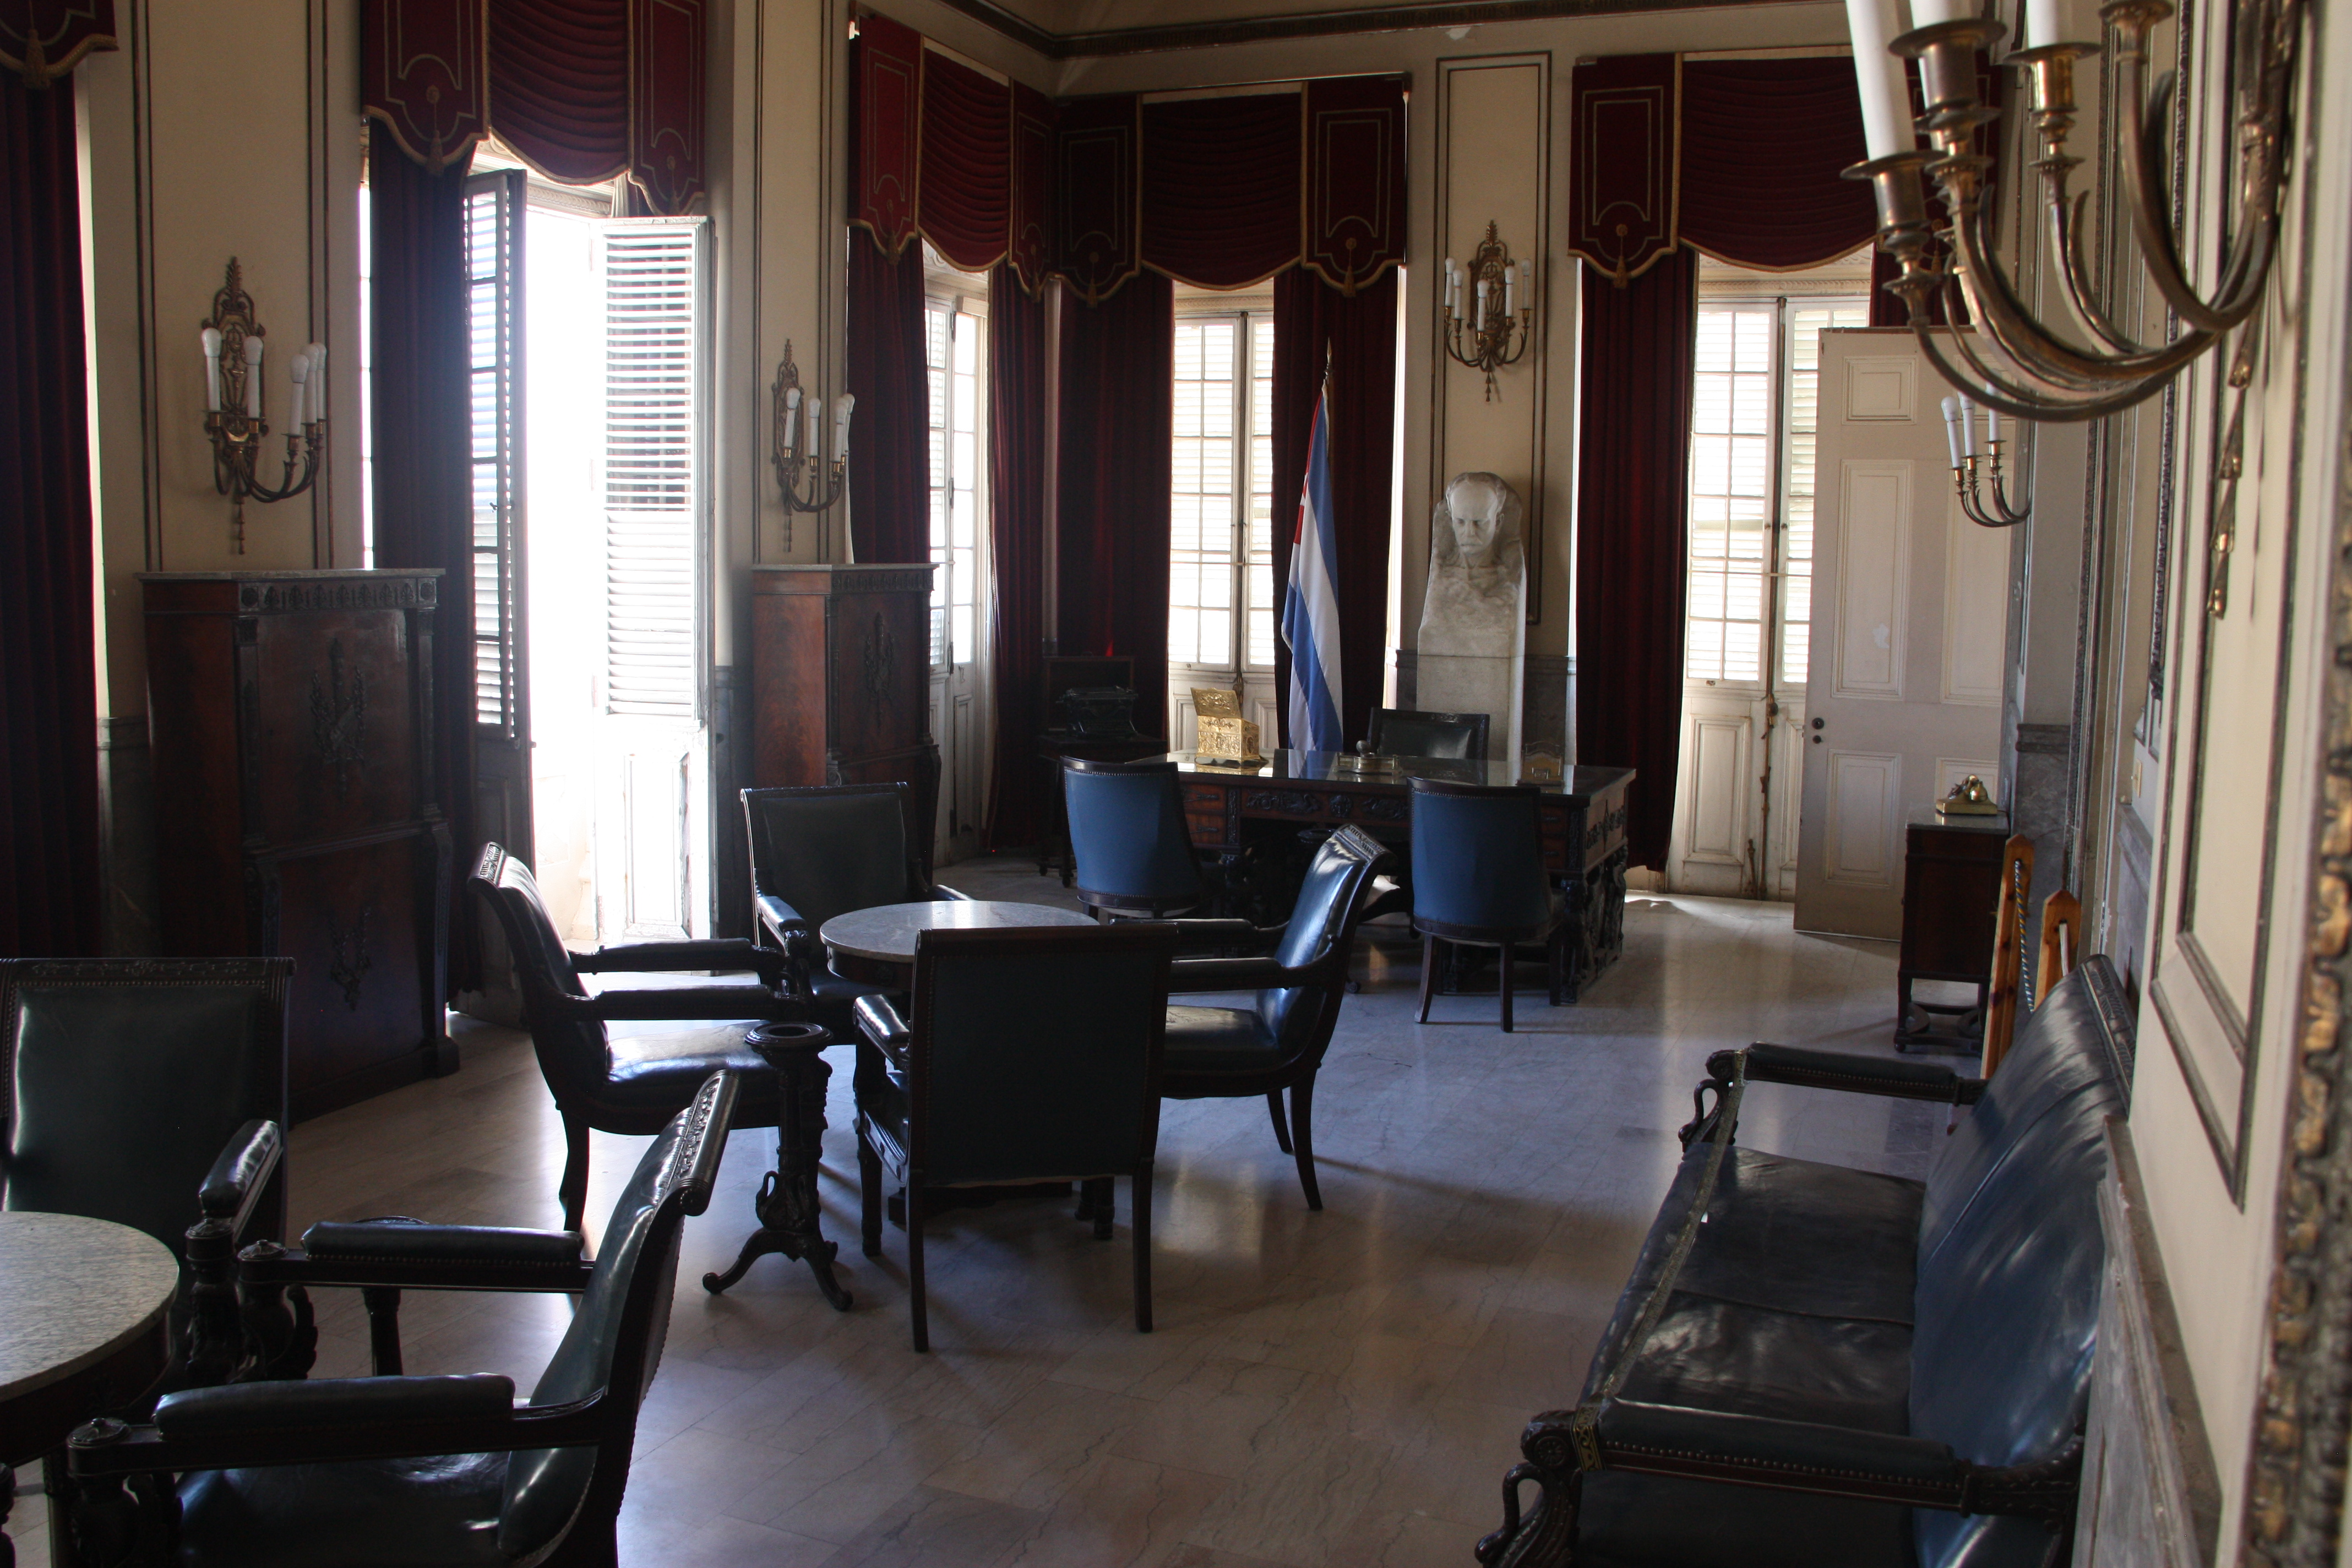 Batista's office in the Presidential Palace.